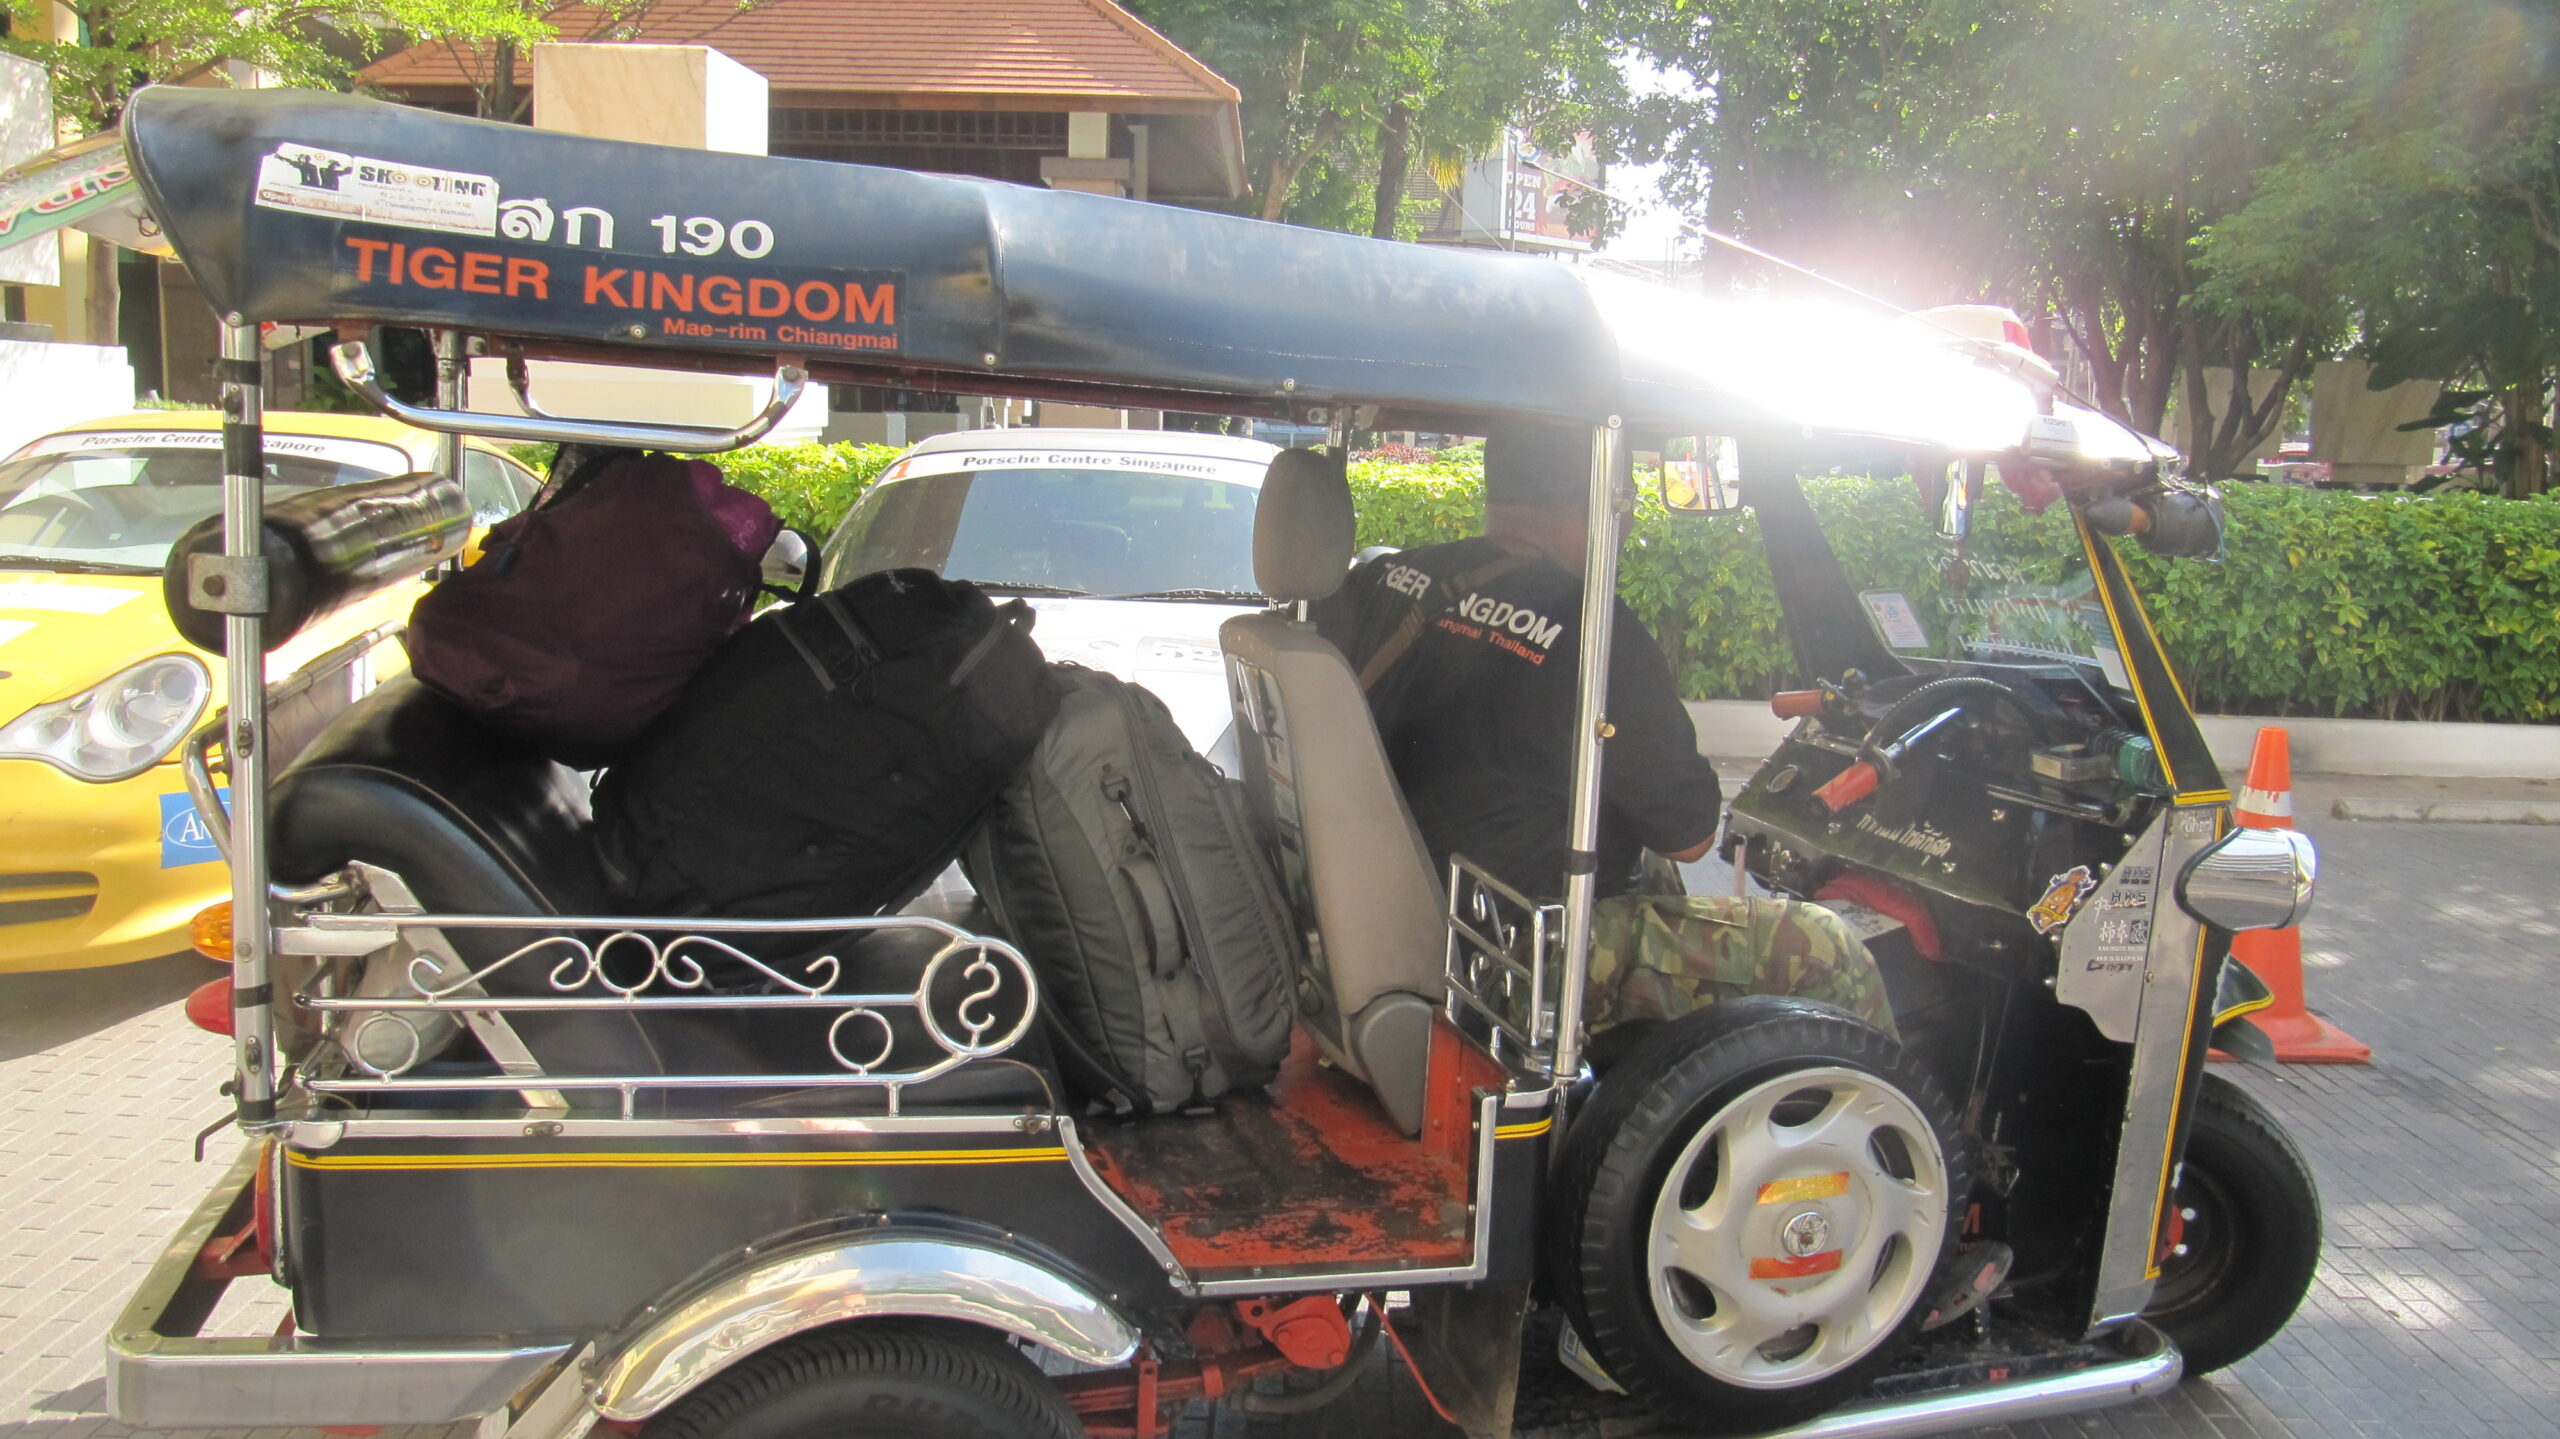 You can take a Tuk Tuk to the airport when traveling with carry-on